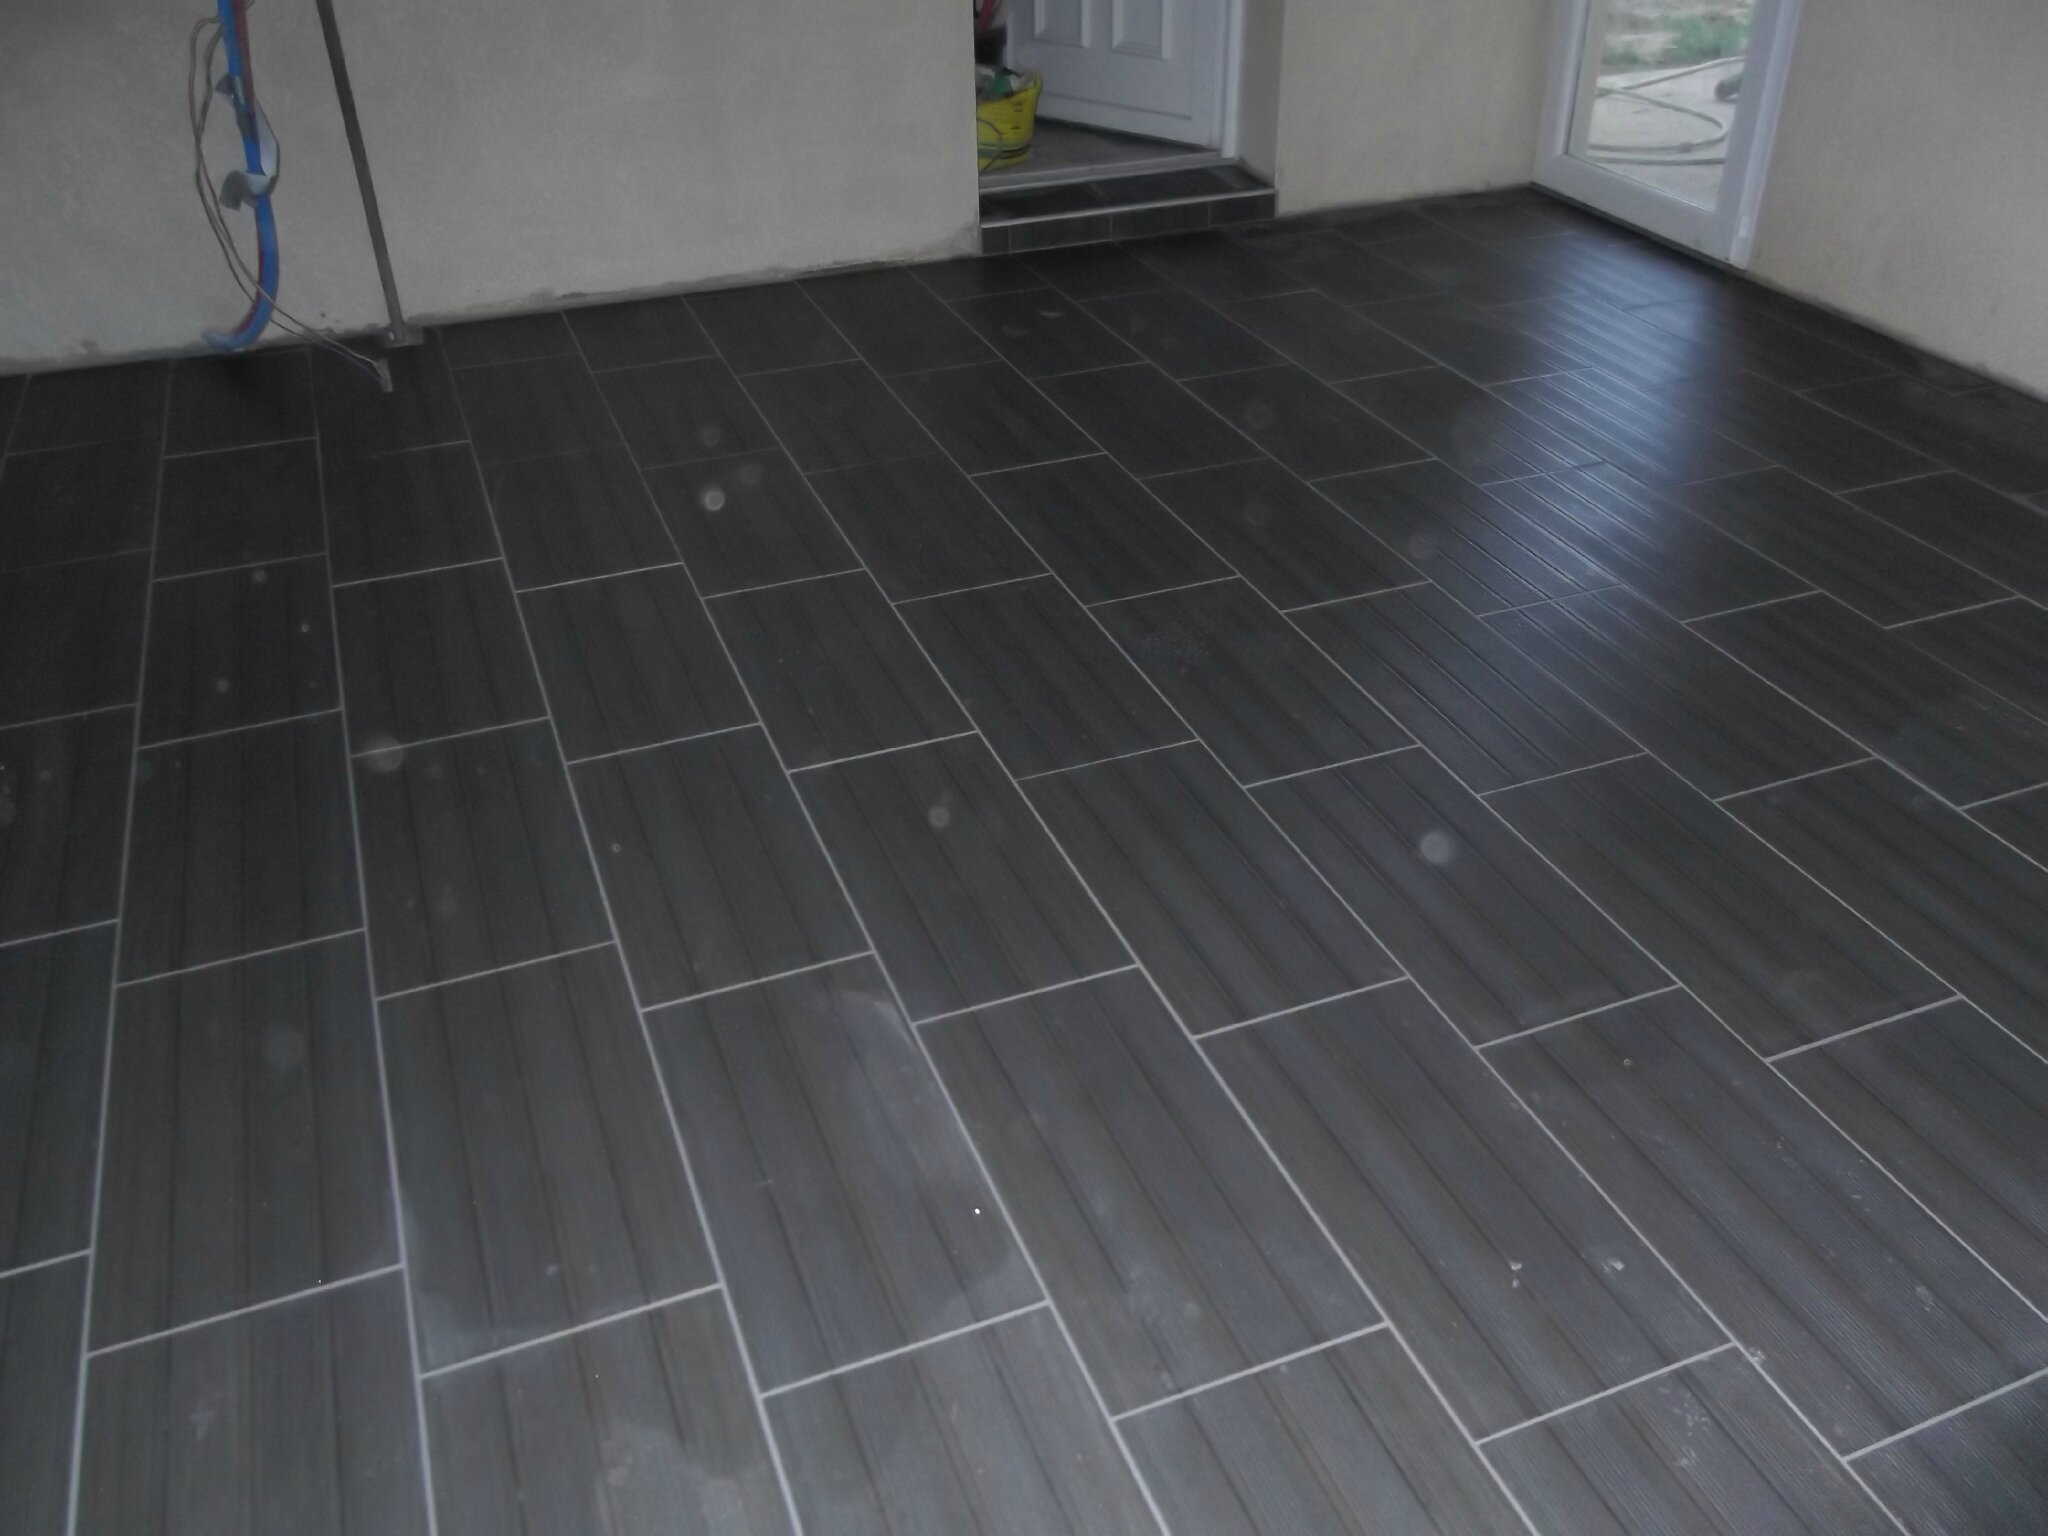 Couleur salon carrelage gris travaux renovation orleans for Carrelage roger orleans horaires